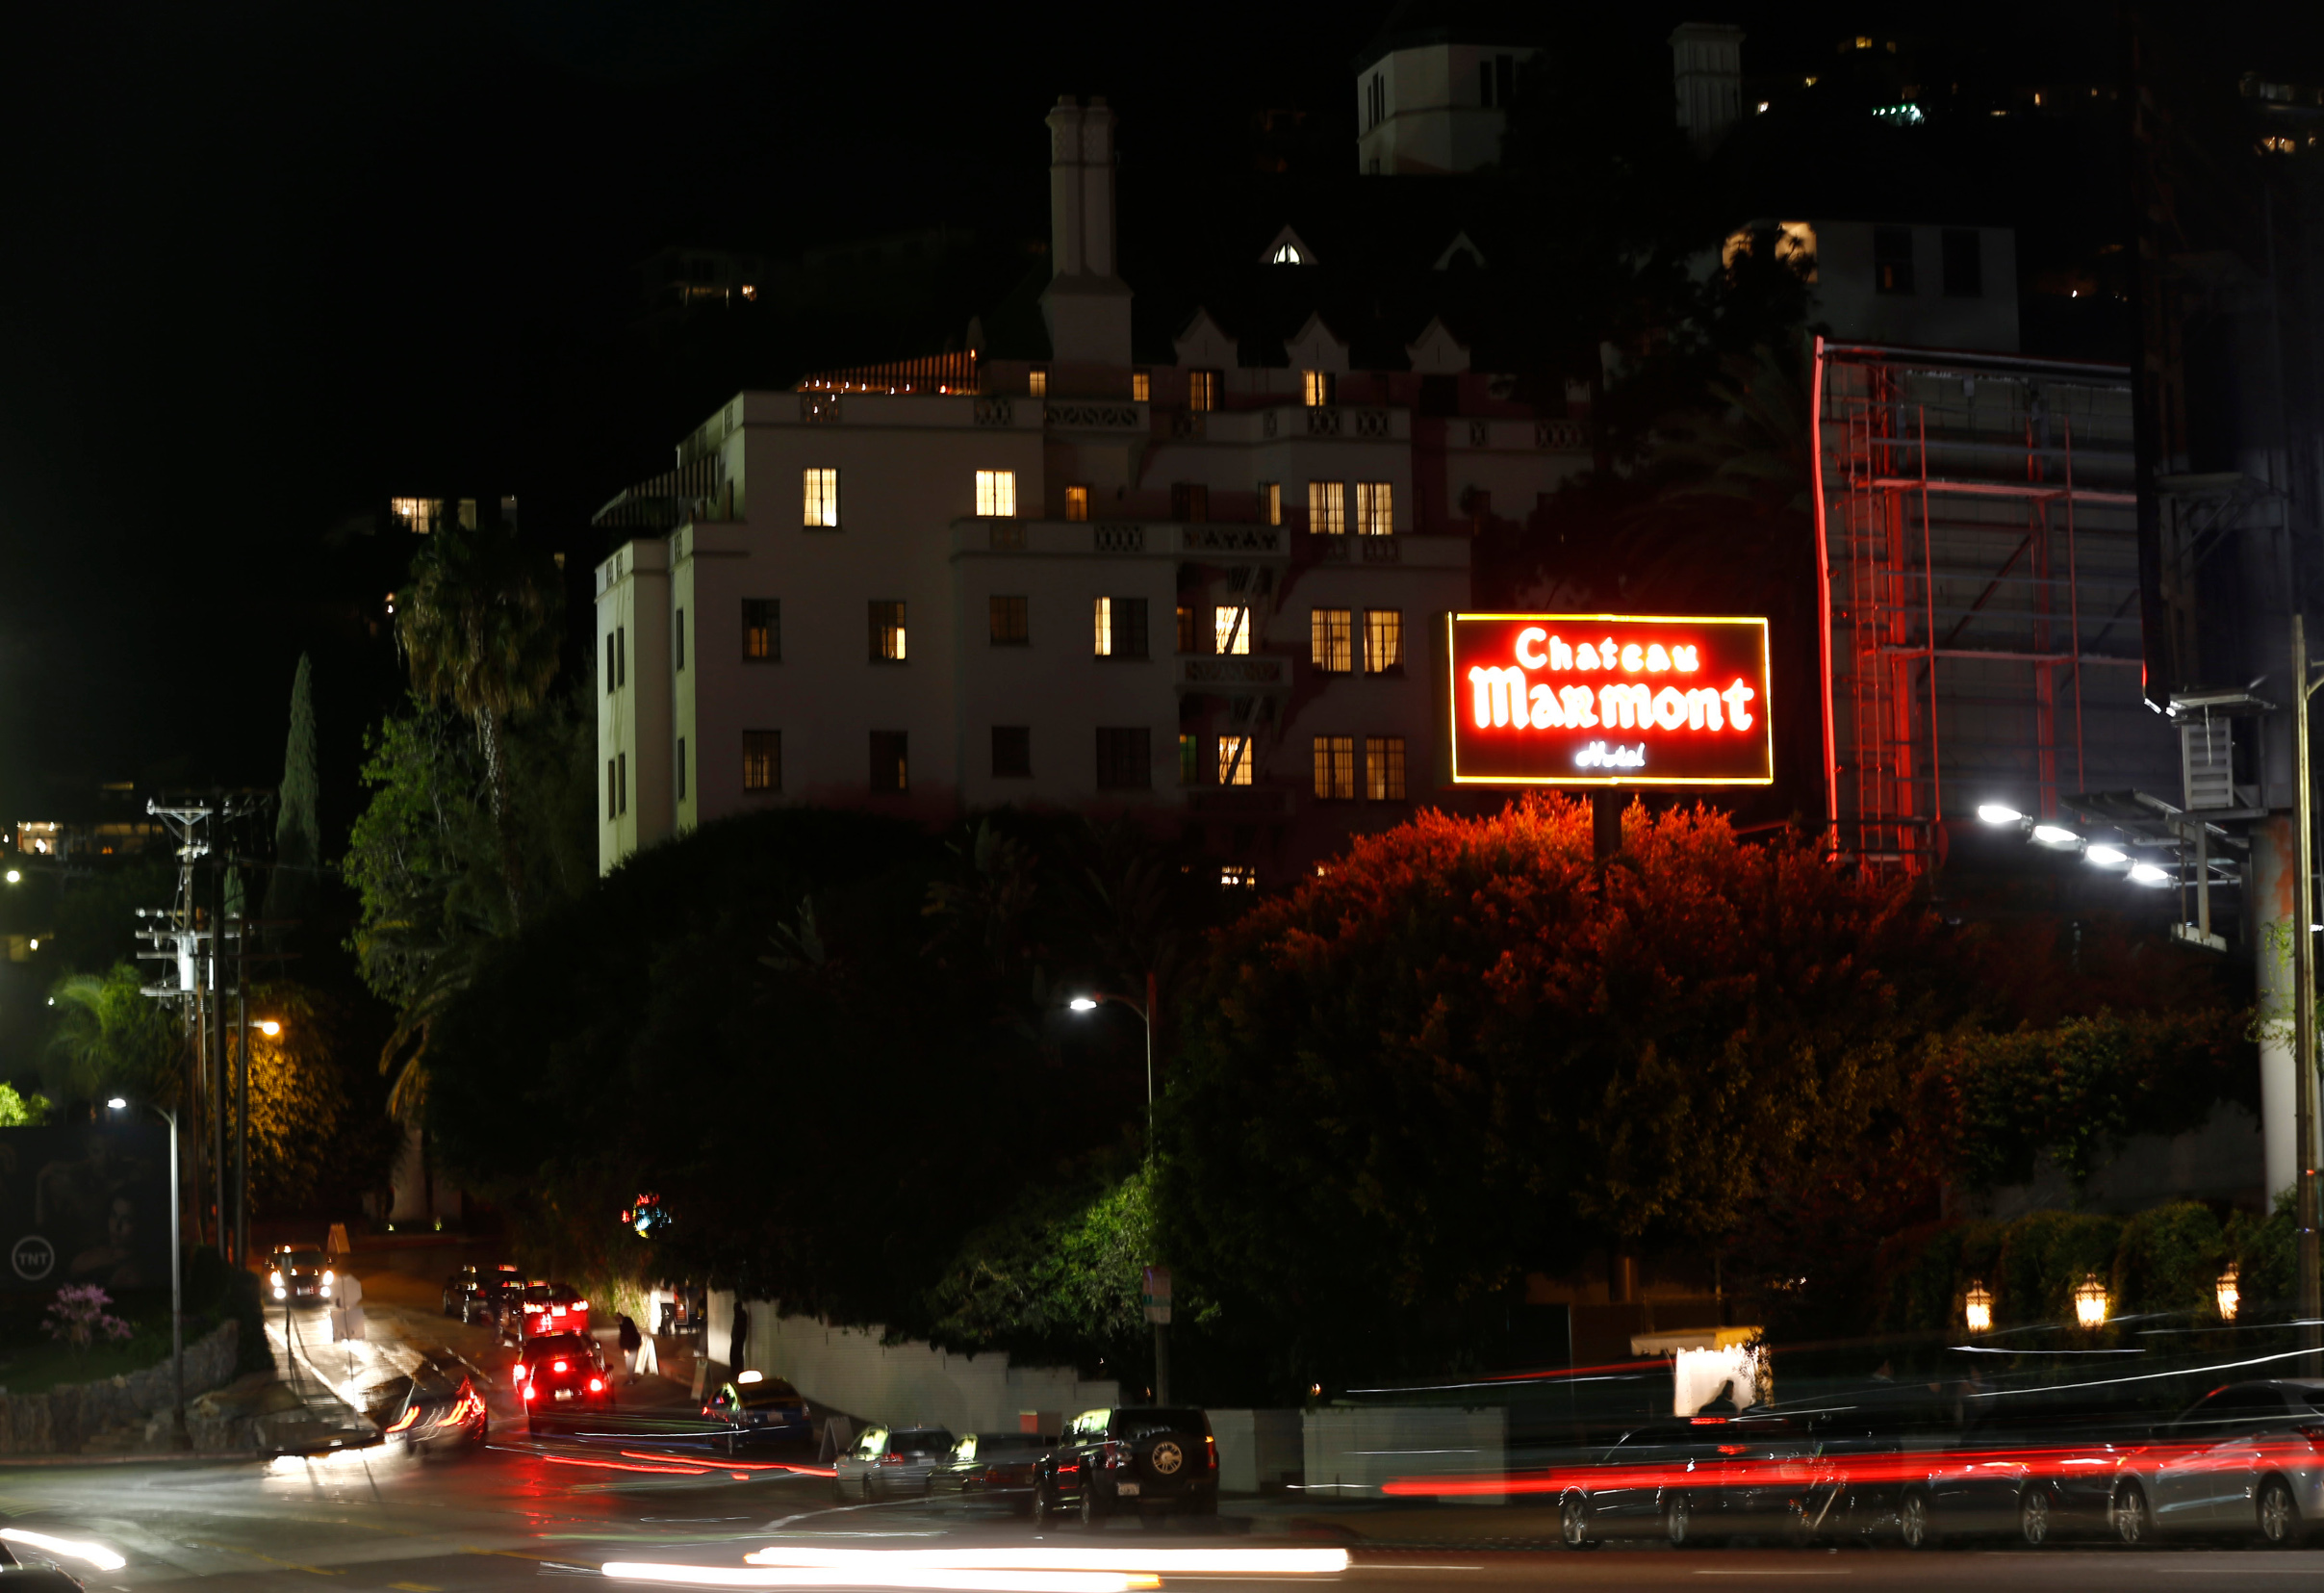 The Chateau Marmont Hotel is pictured in West Hollywood, California February 20, 2014. If walls could talk, the gothic-style Chateau Marmont hotel at 8221 Sunset Boulevard would have the most enticing stories. It is still one of the top destinations for stars to escape the cameras and find privacy in many of the dark nooks. Picture taken February 20, 2014.  REUTERS/Mario Anzuoni  (UNITED STATES - Tags: ENTERTAINMENT TRAVEL SOCIETY) - GM1EA2L1U1T01